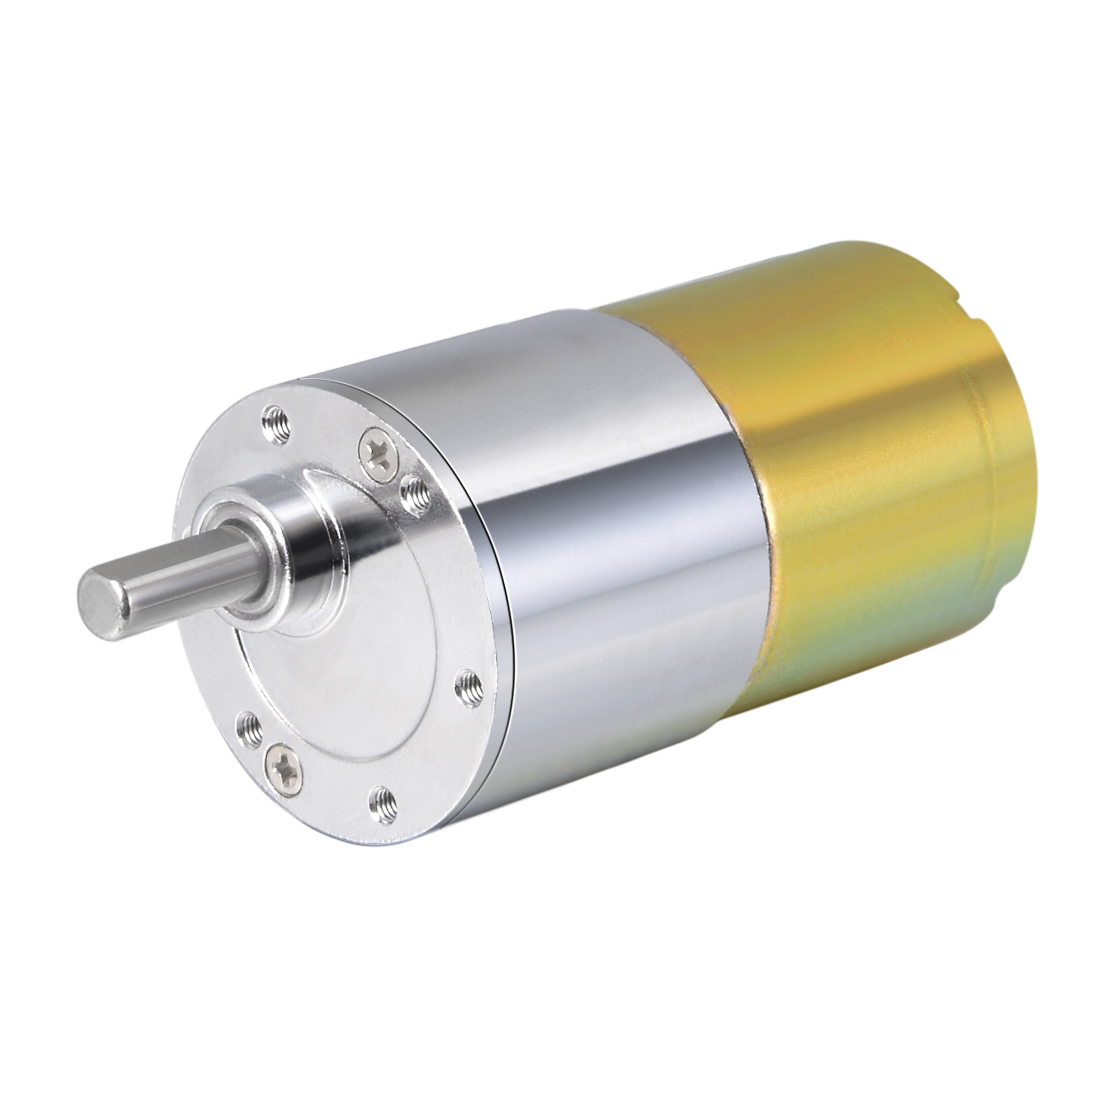 uxcell 24V DC <font><b>50</b></font> <font><b>RPM</b></font> Gear <font><b>Motor</b></font> High Torque Electric Reduction Gearbox Eccentric Output Shaft image